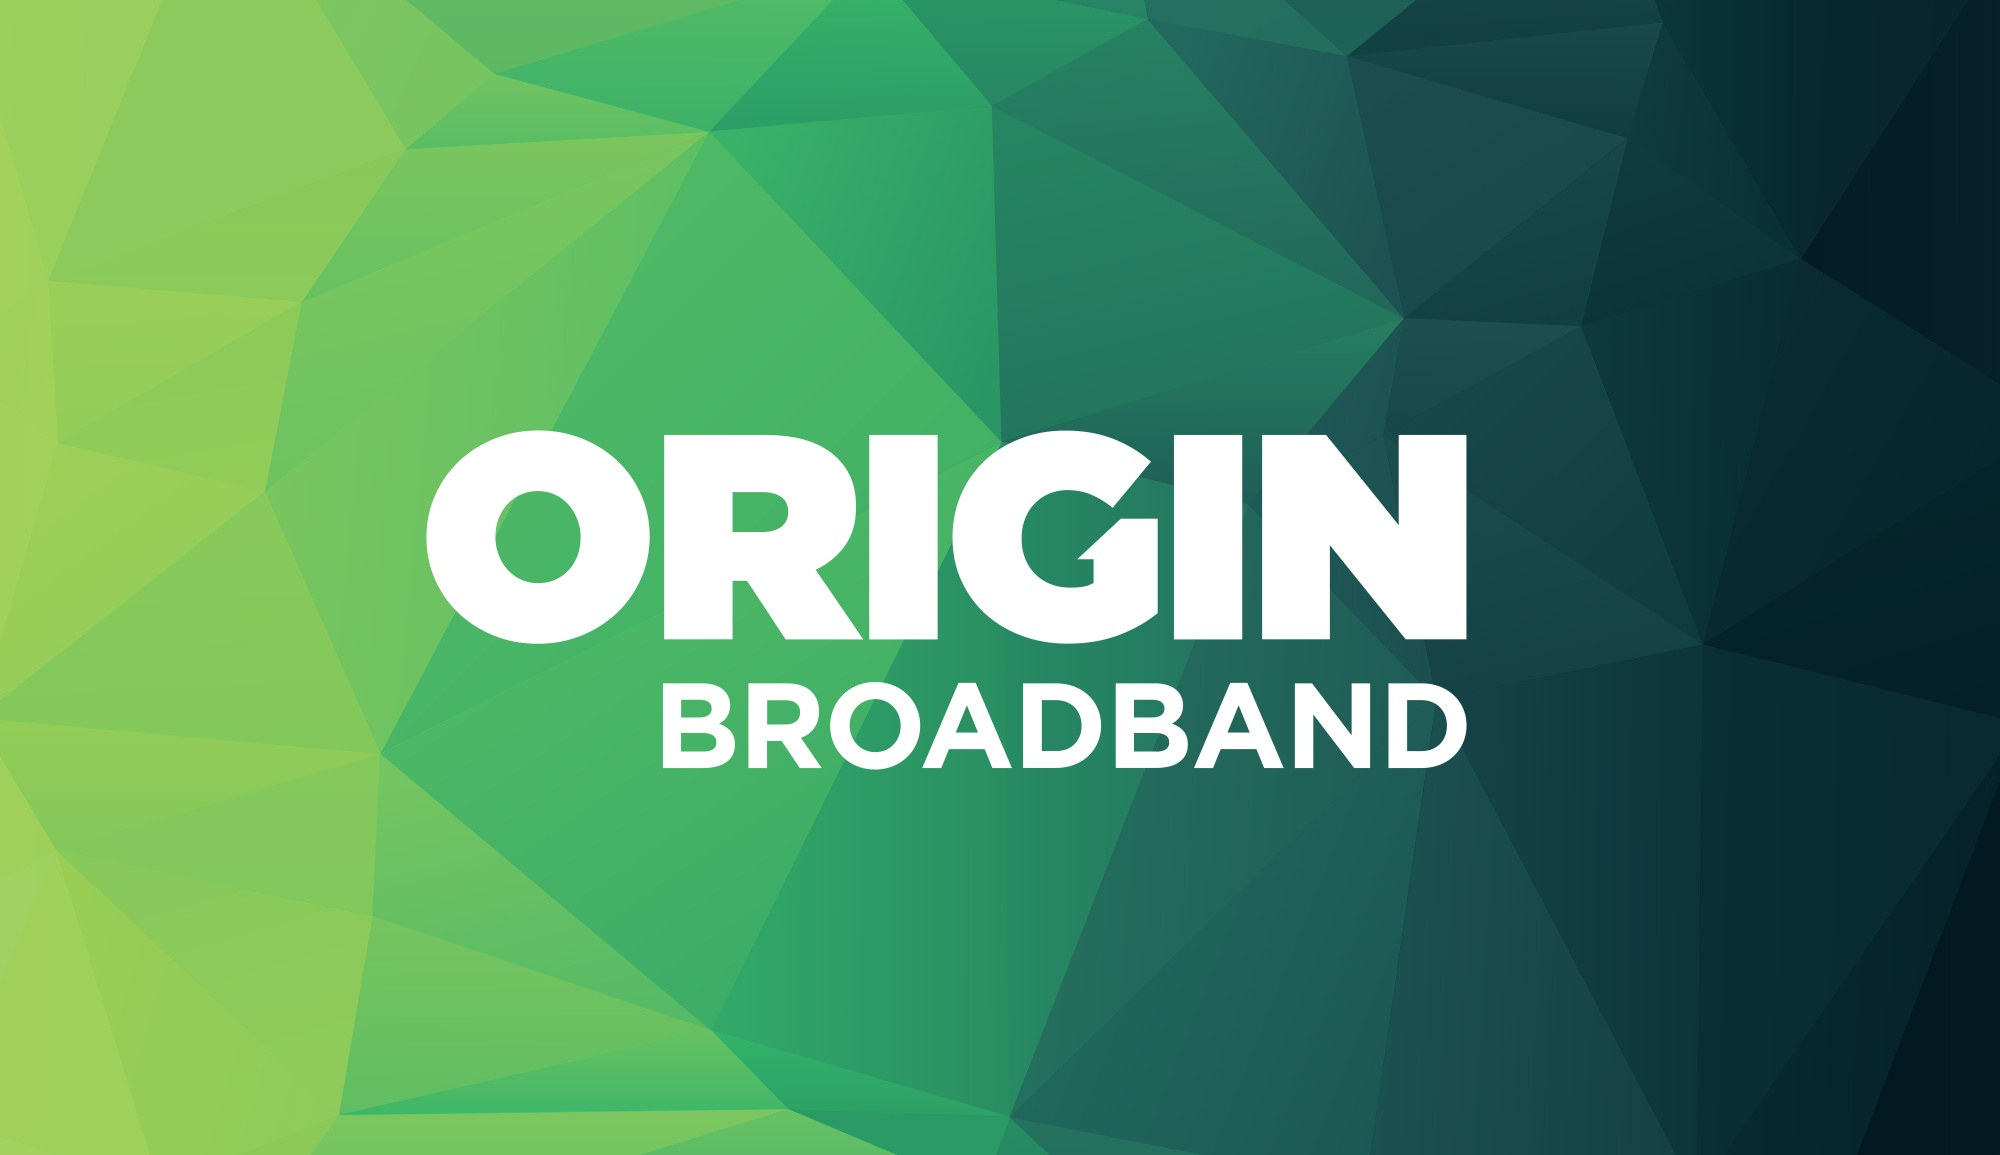 Origin Broadband: why knowing your customer matters